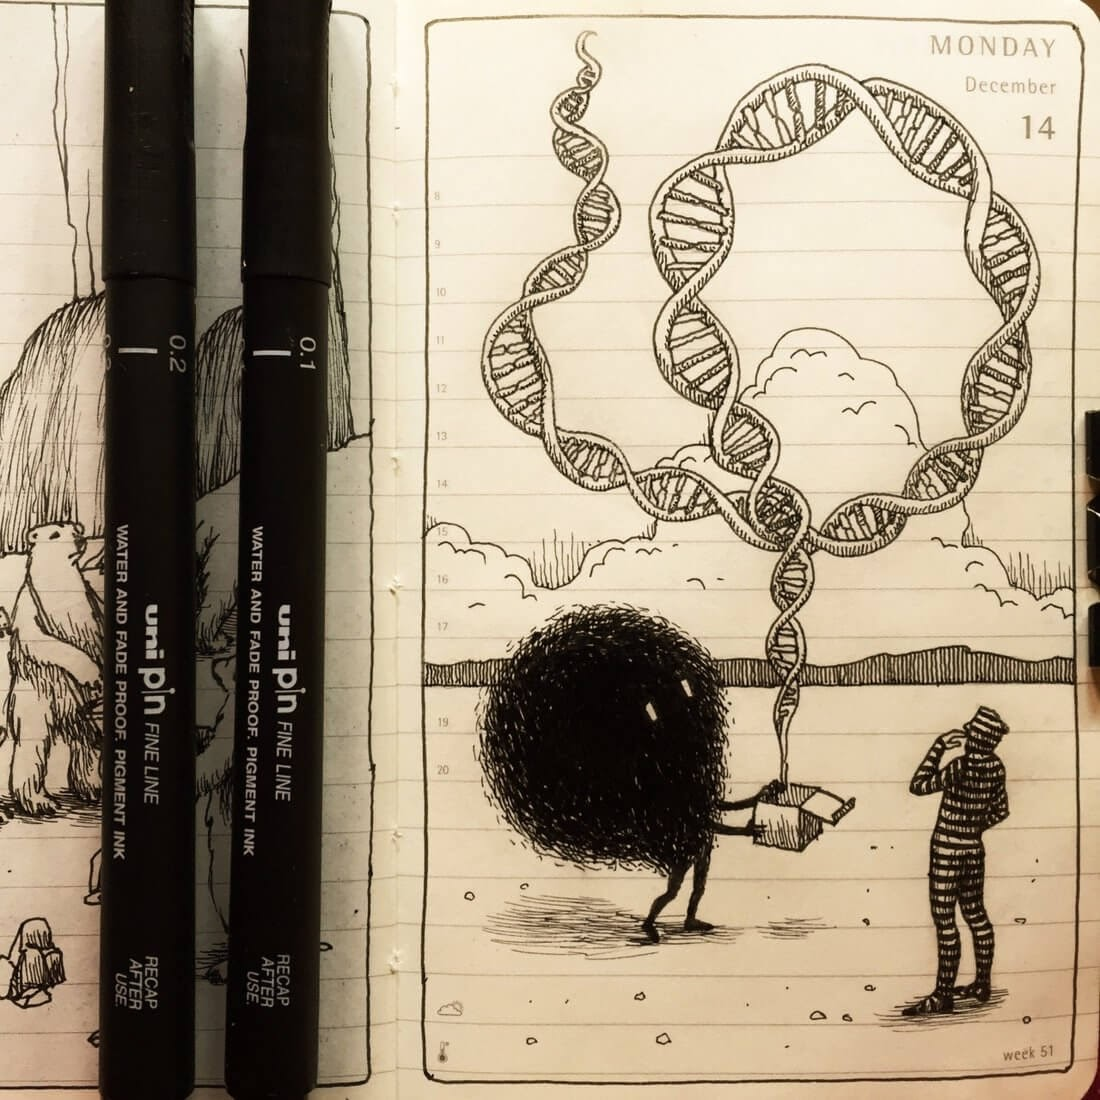 05-Is-DNA-all-we-are-Nina-Johansson-Moleskine-Diary-of-Surreal-Ink-Drawings-www-designstack-co